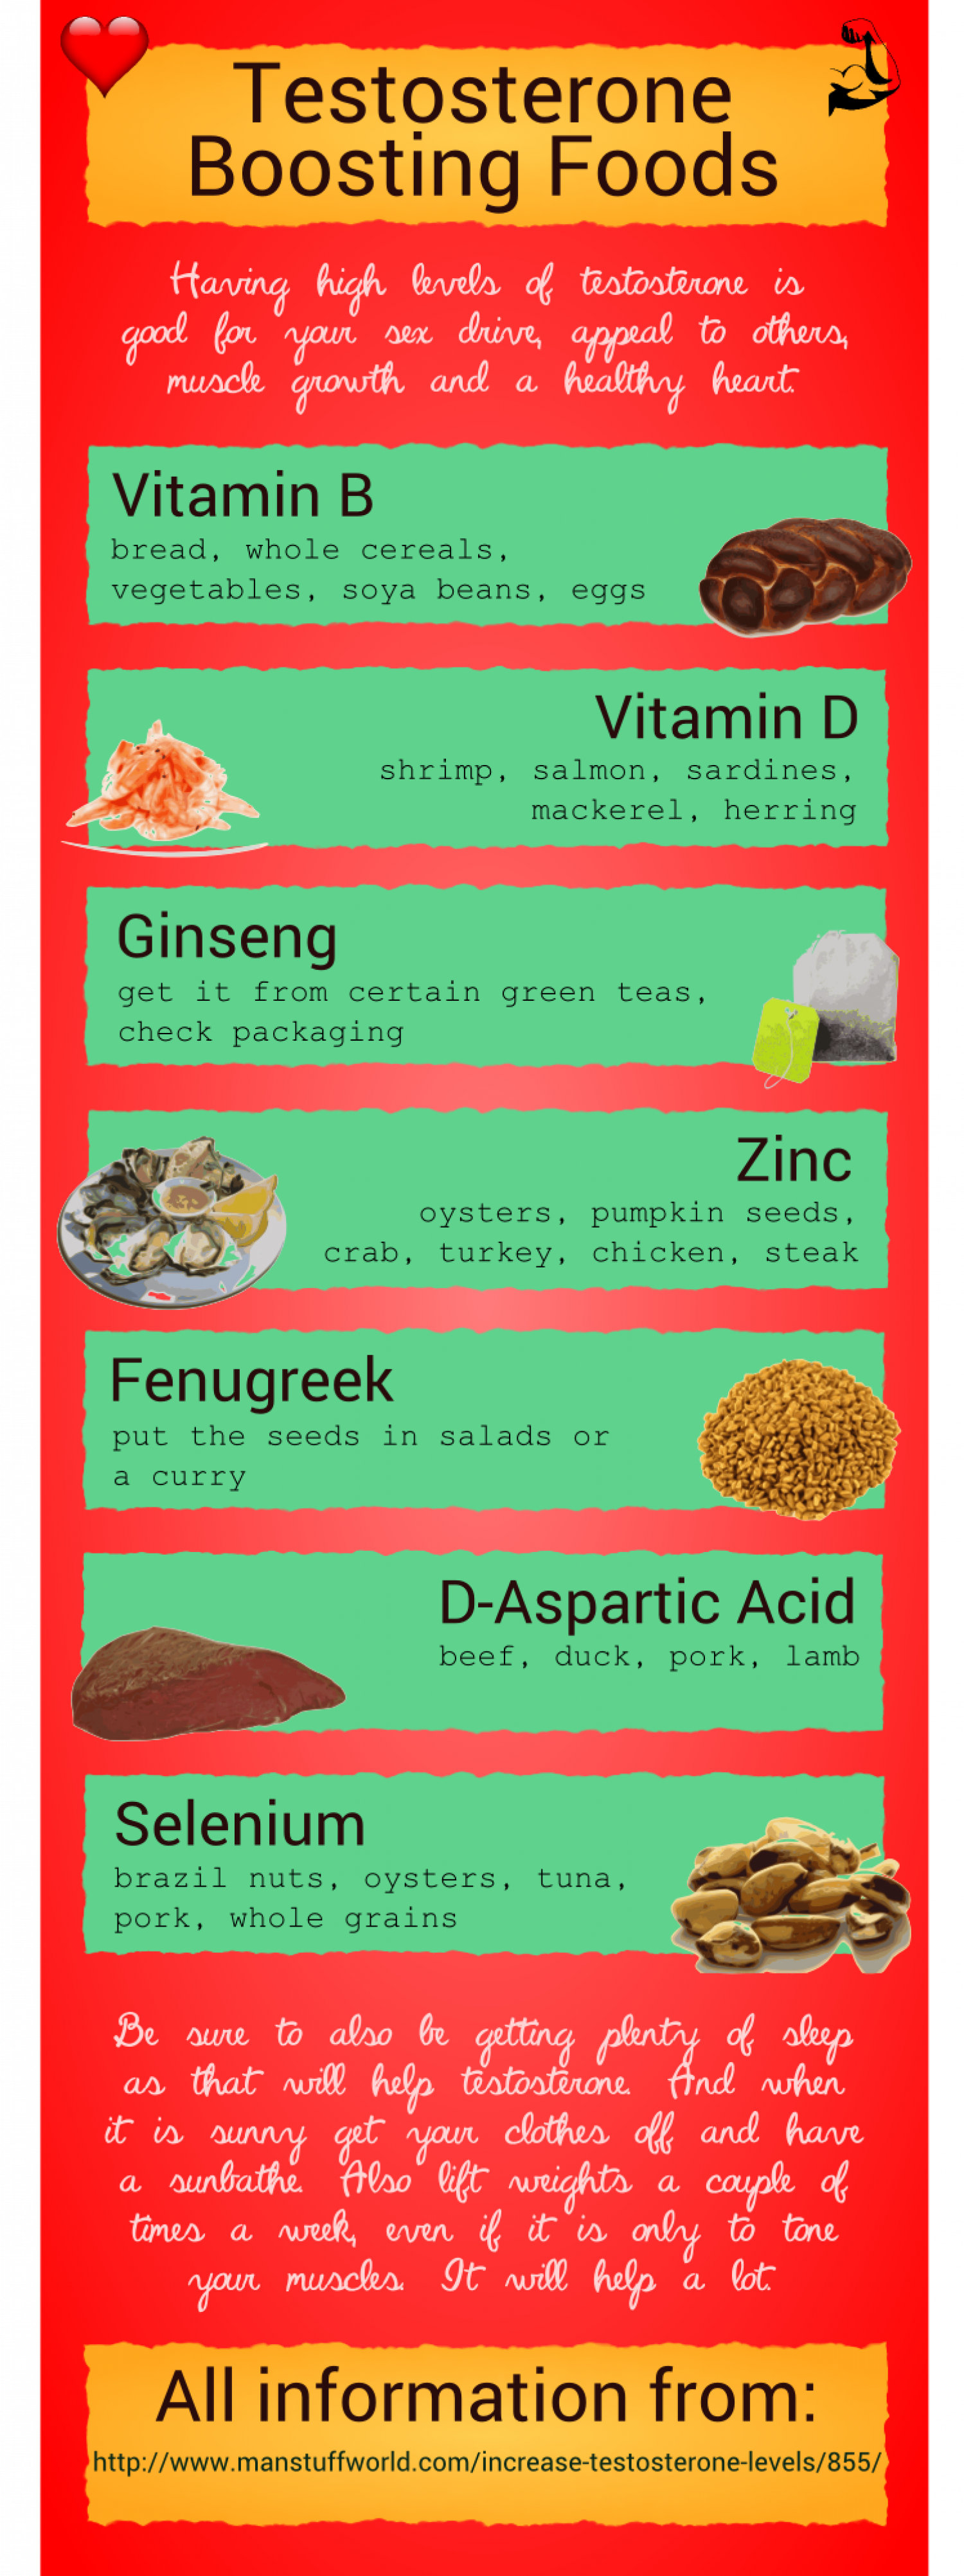 Testosterone boosting foods Infographic